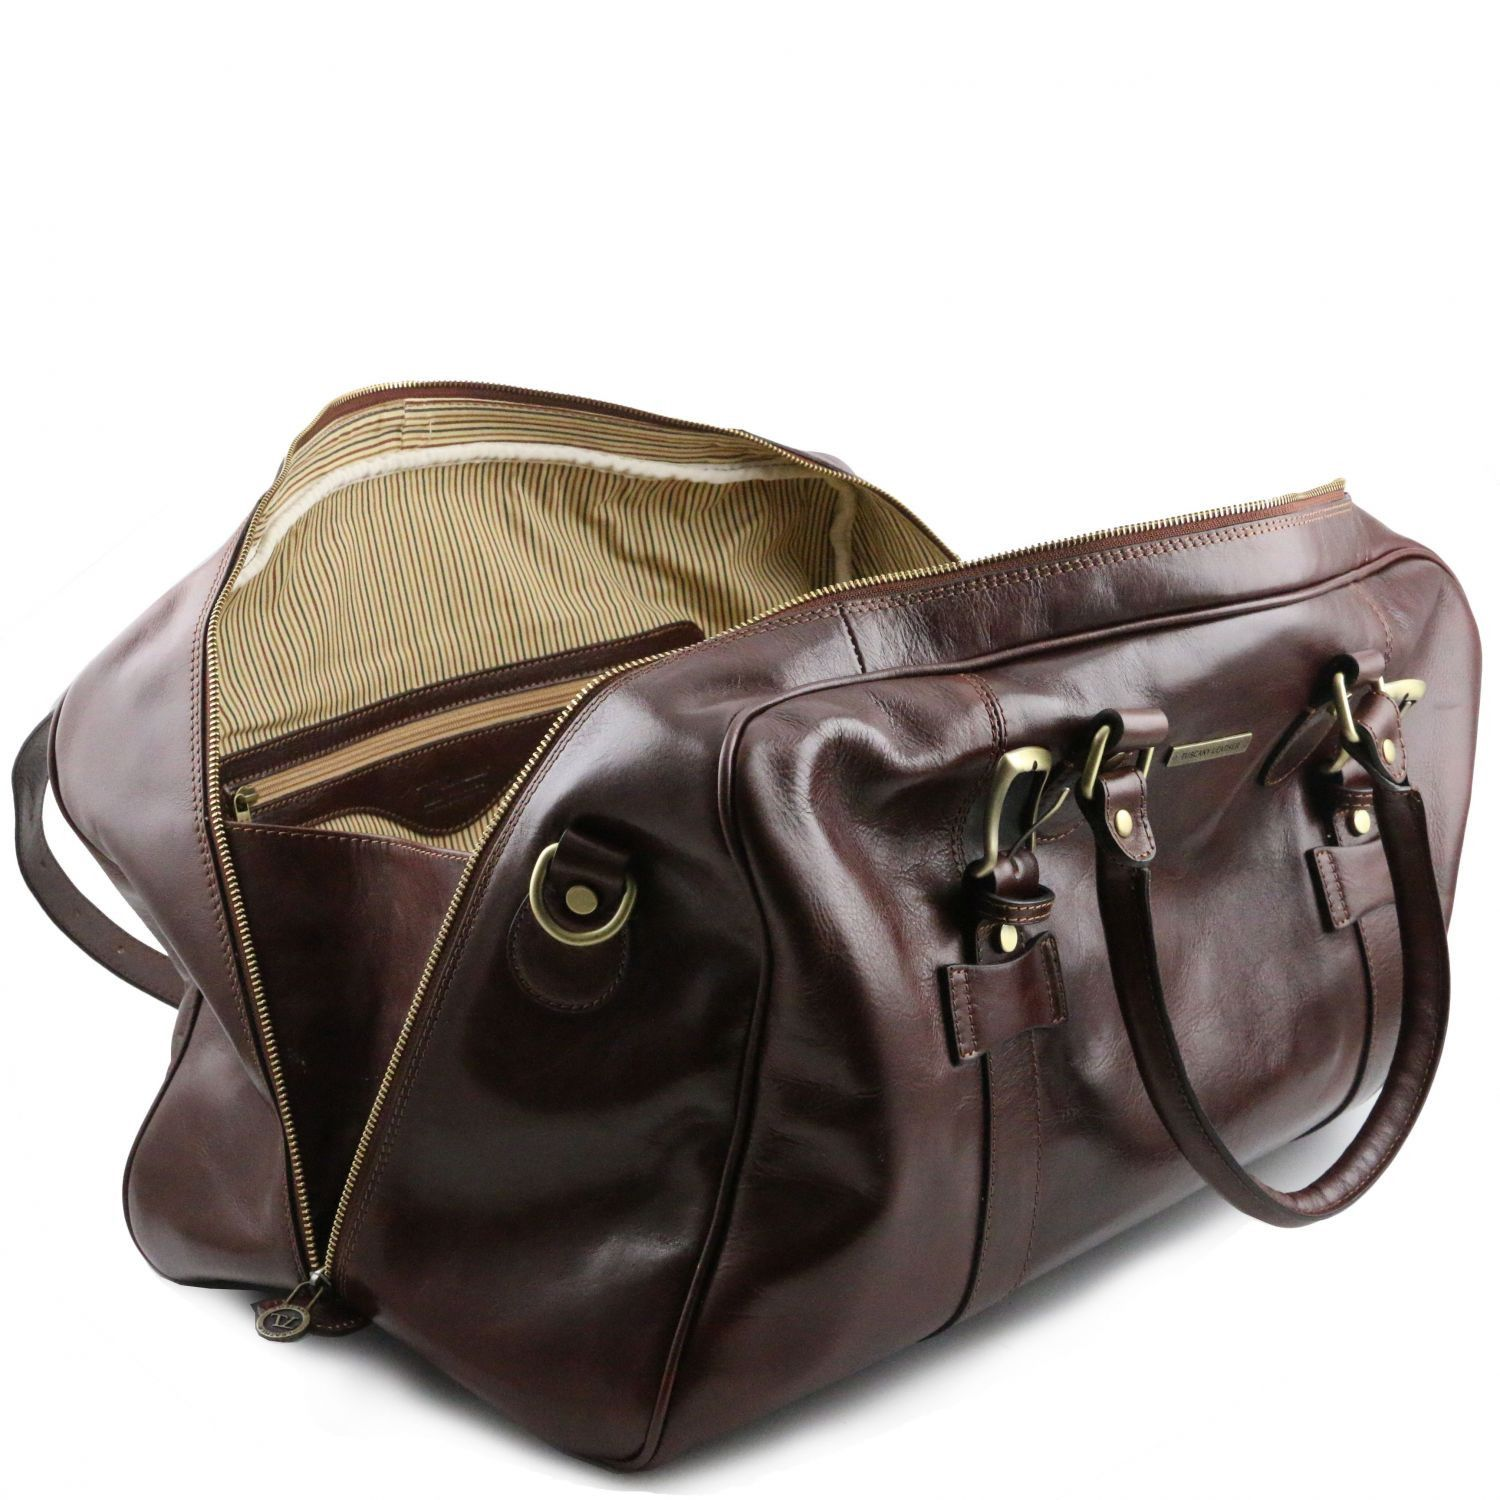 TL Voyager - Leather travel bag with front straps - Large size (TL141248) - Leather Travel bags | DILUSSOBAGS